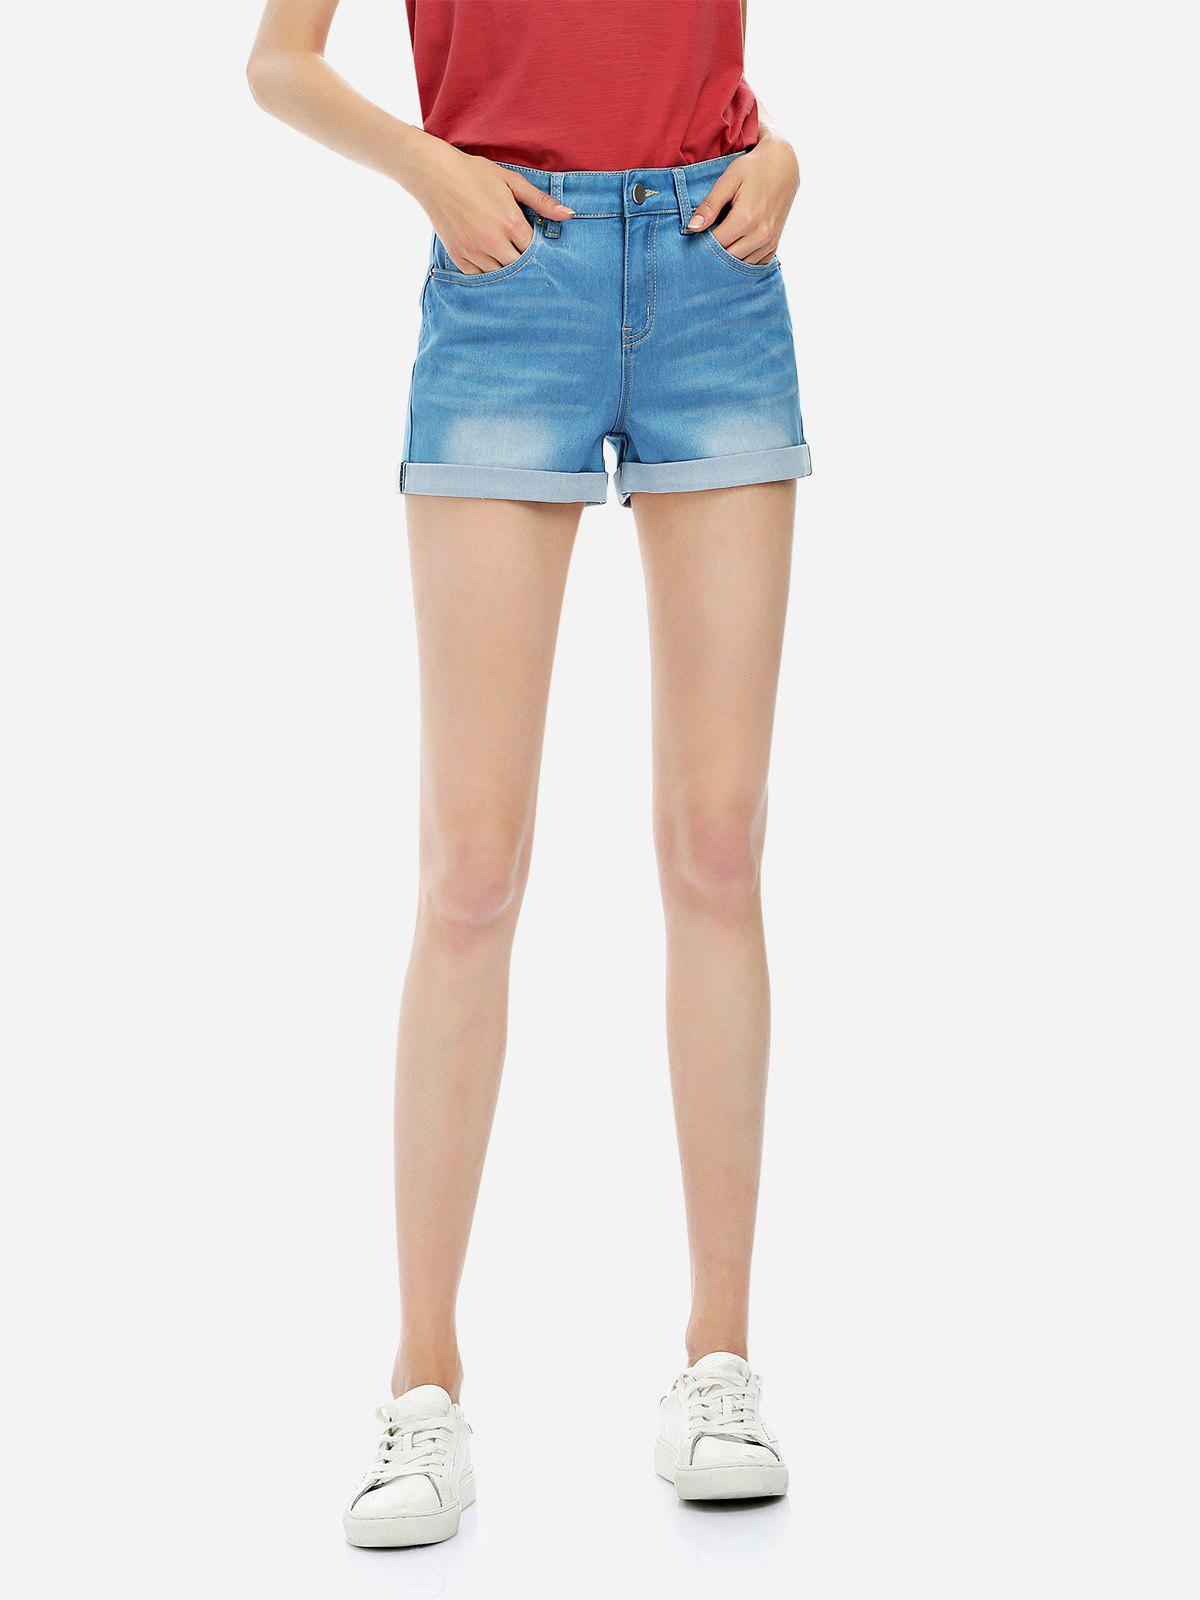 ZAN.STYLE Faded Denim Shorts - Bleu M